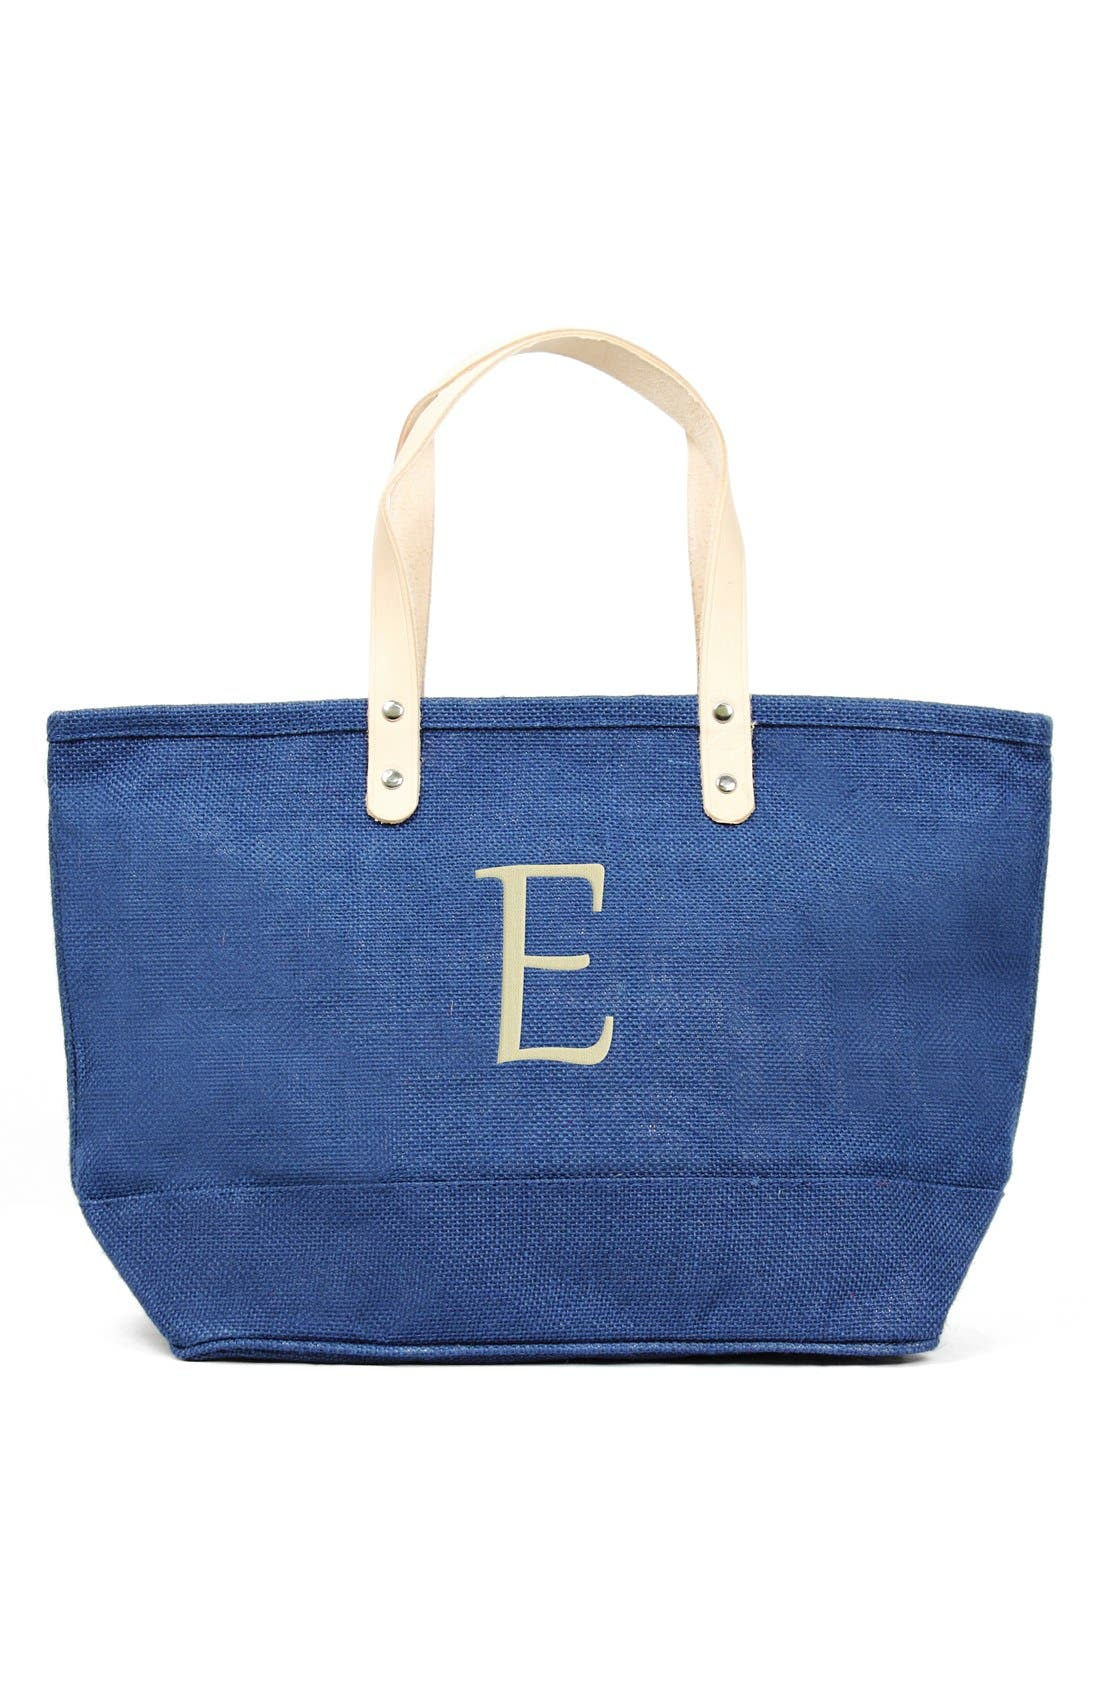 CATHYS CONCEPTS Nantucket Monogram Jute Tote